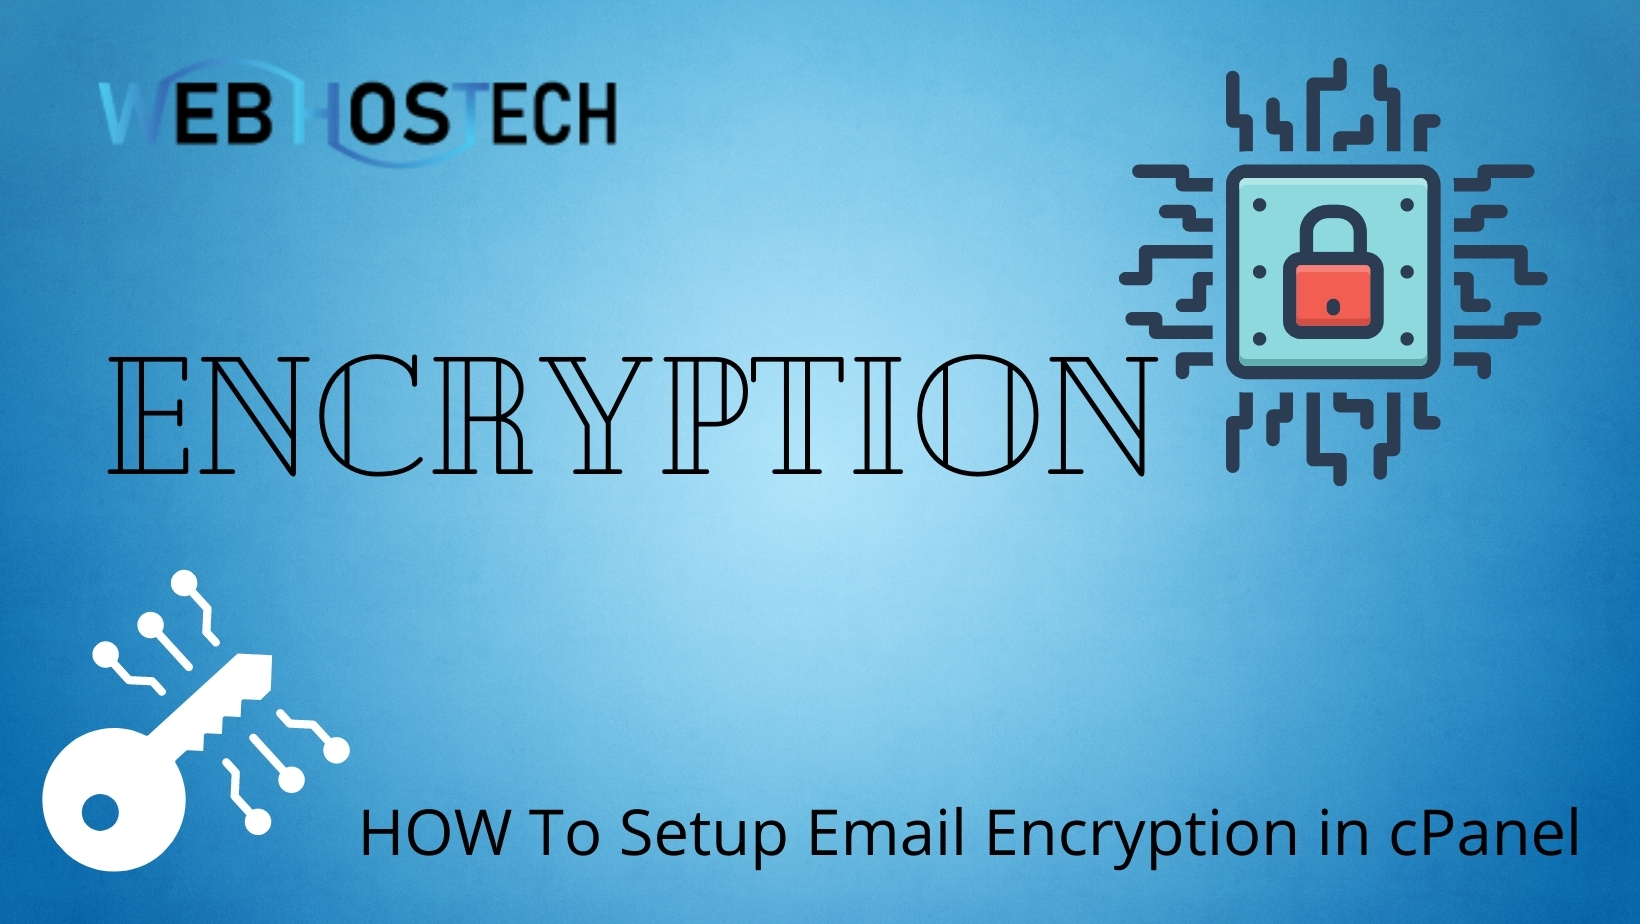 How To Install An Encrypted Email Using Email Encryption Cpanel